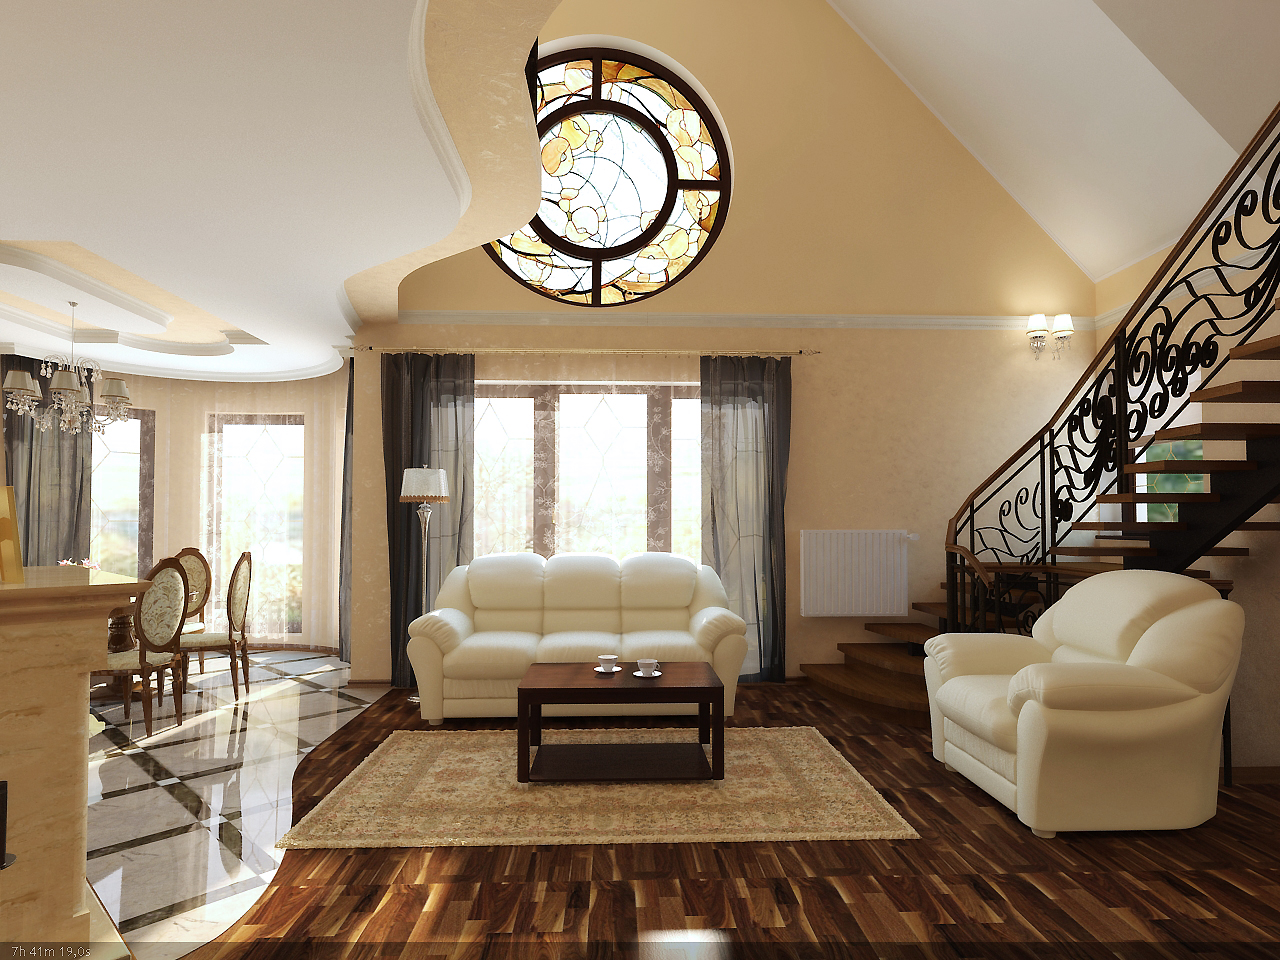 Classic Interior Design - Homes interior design